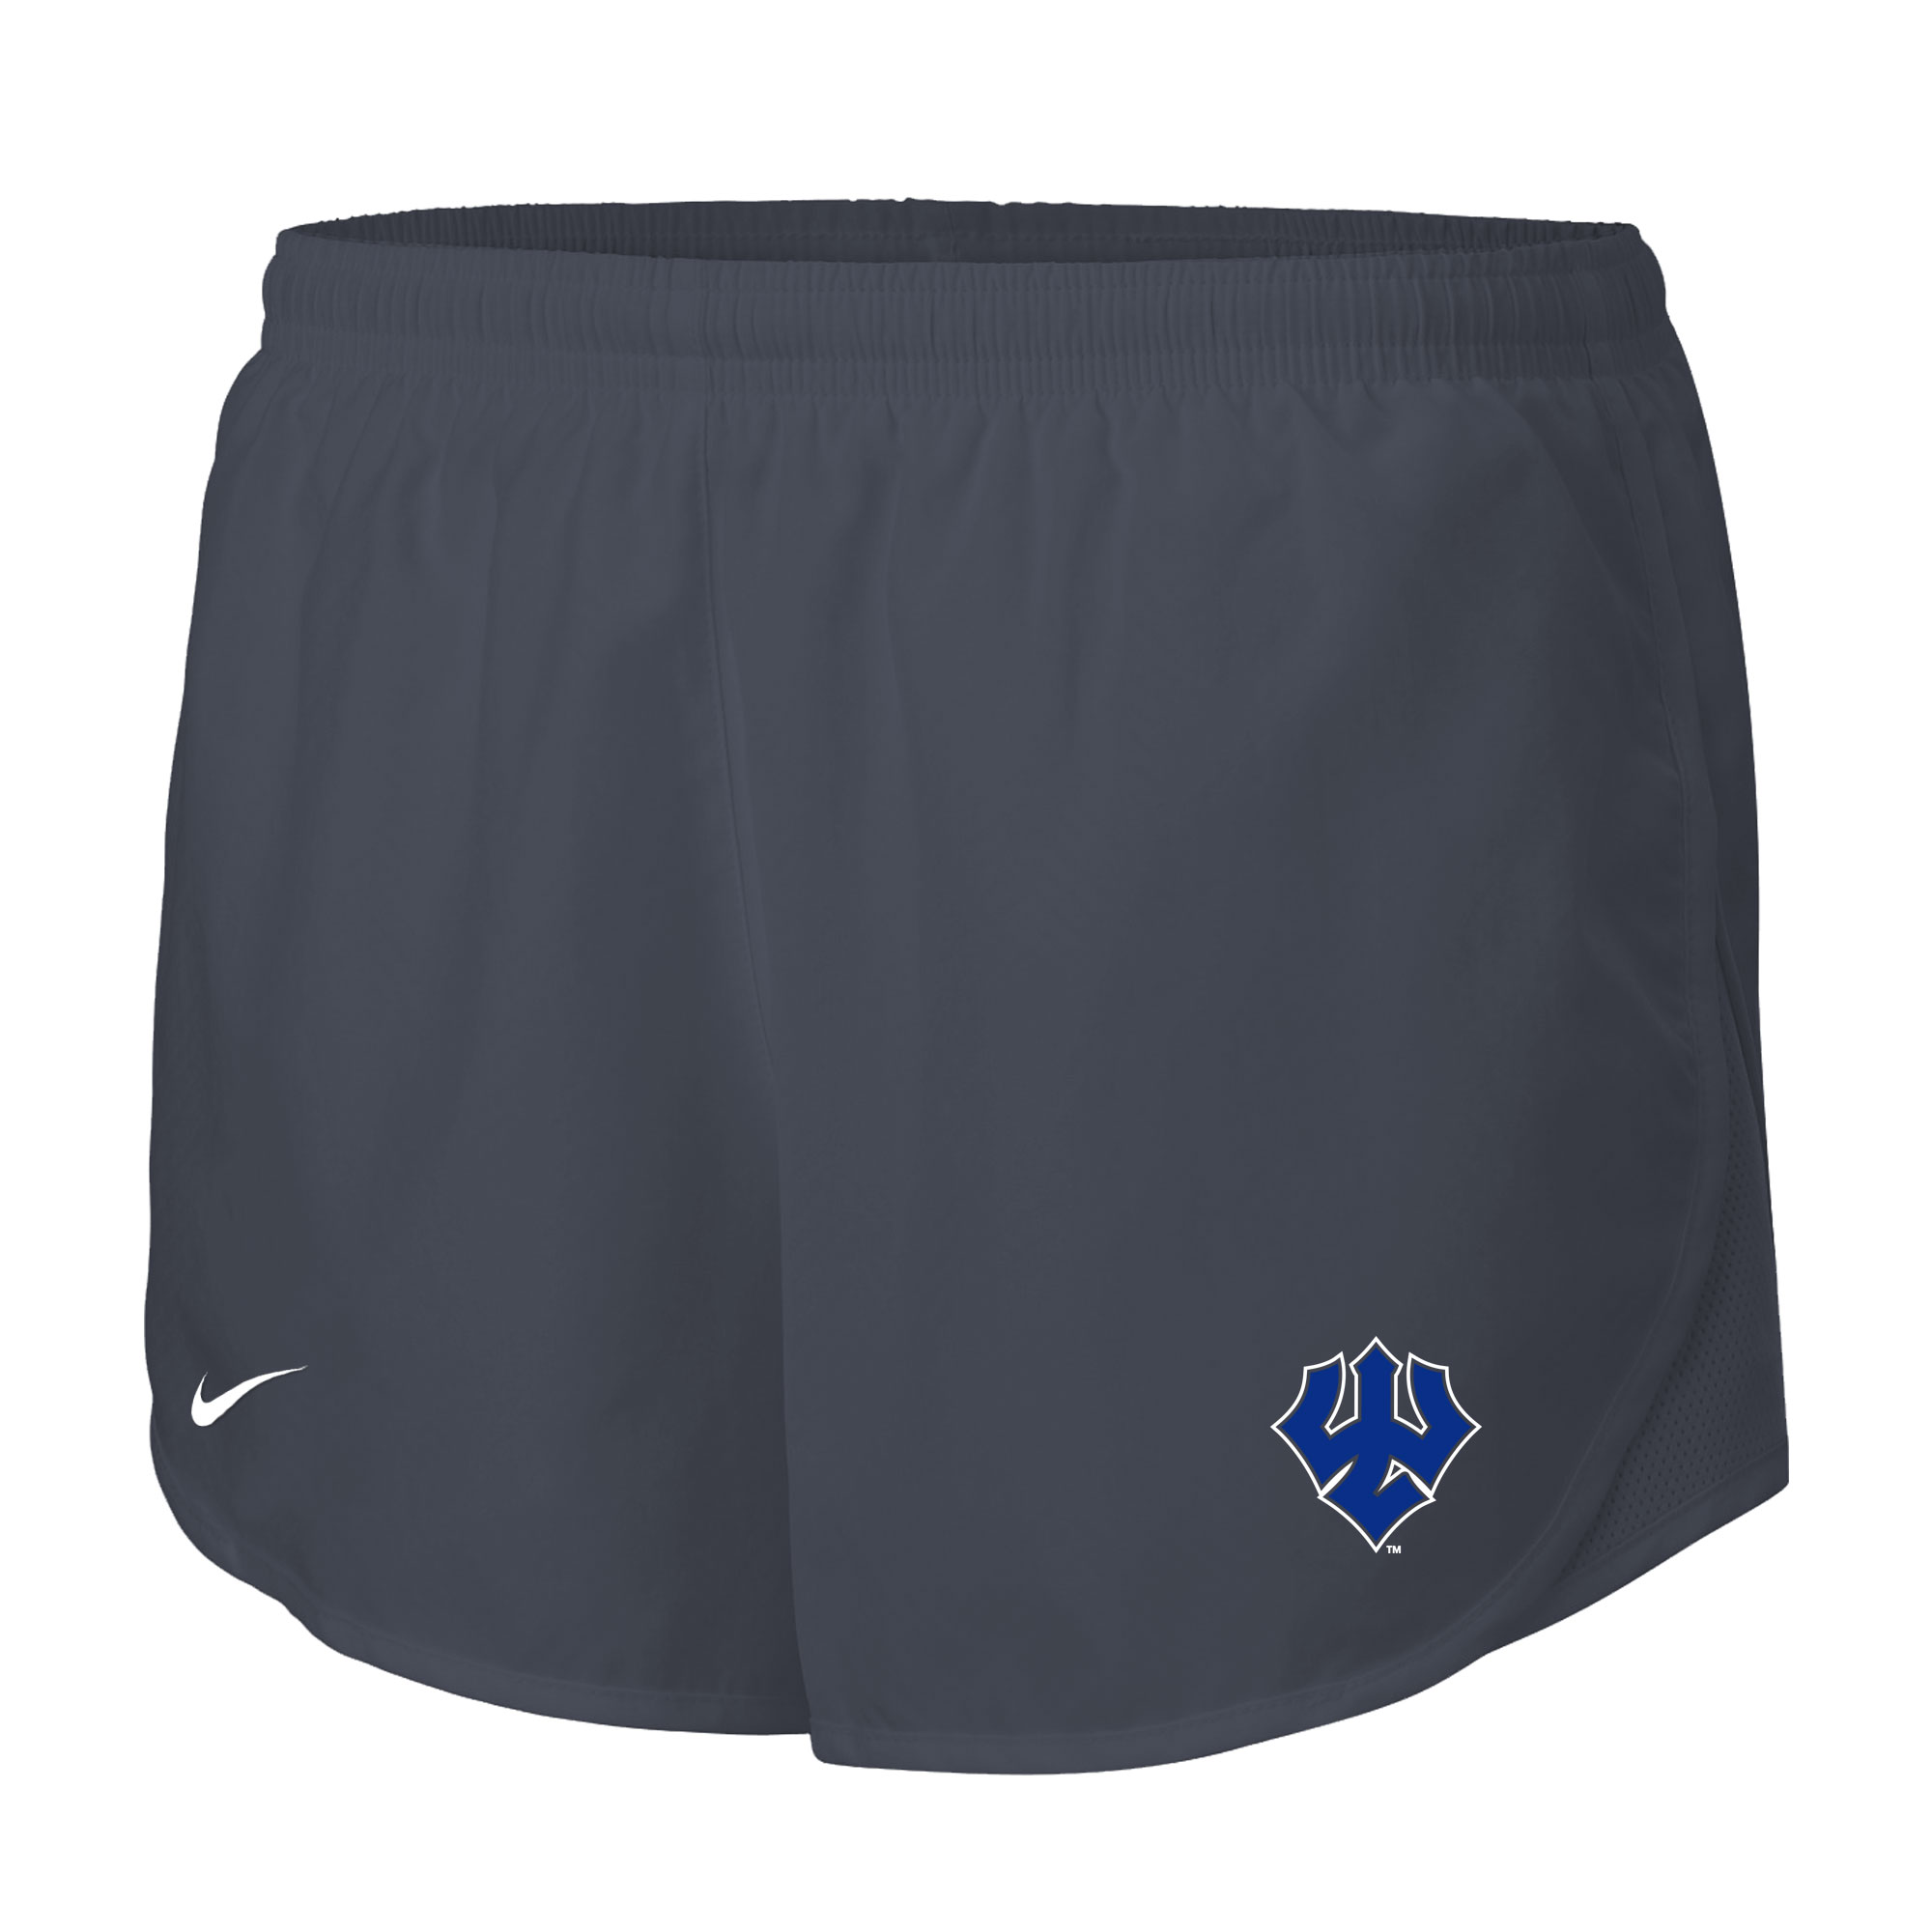 Cover Image For Nike Stadium Mod Tempo Shorts, Anthracite